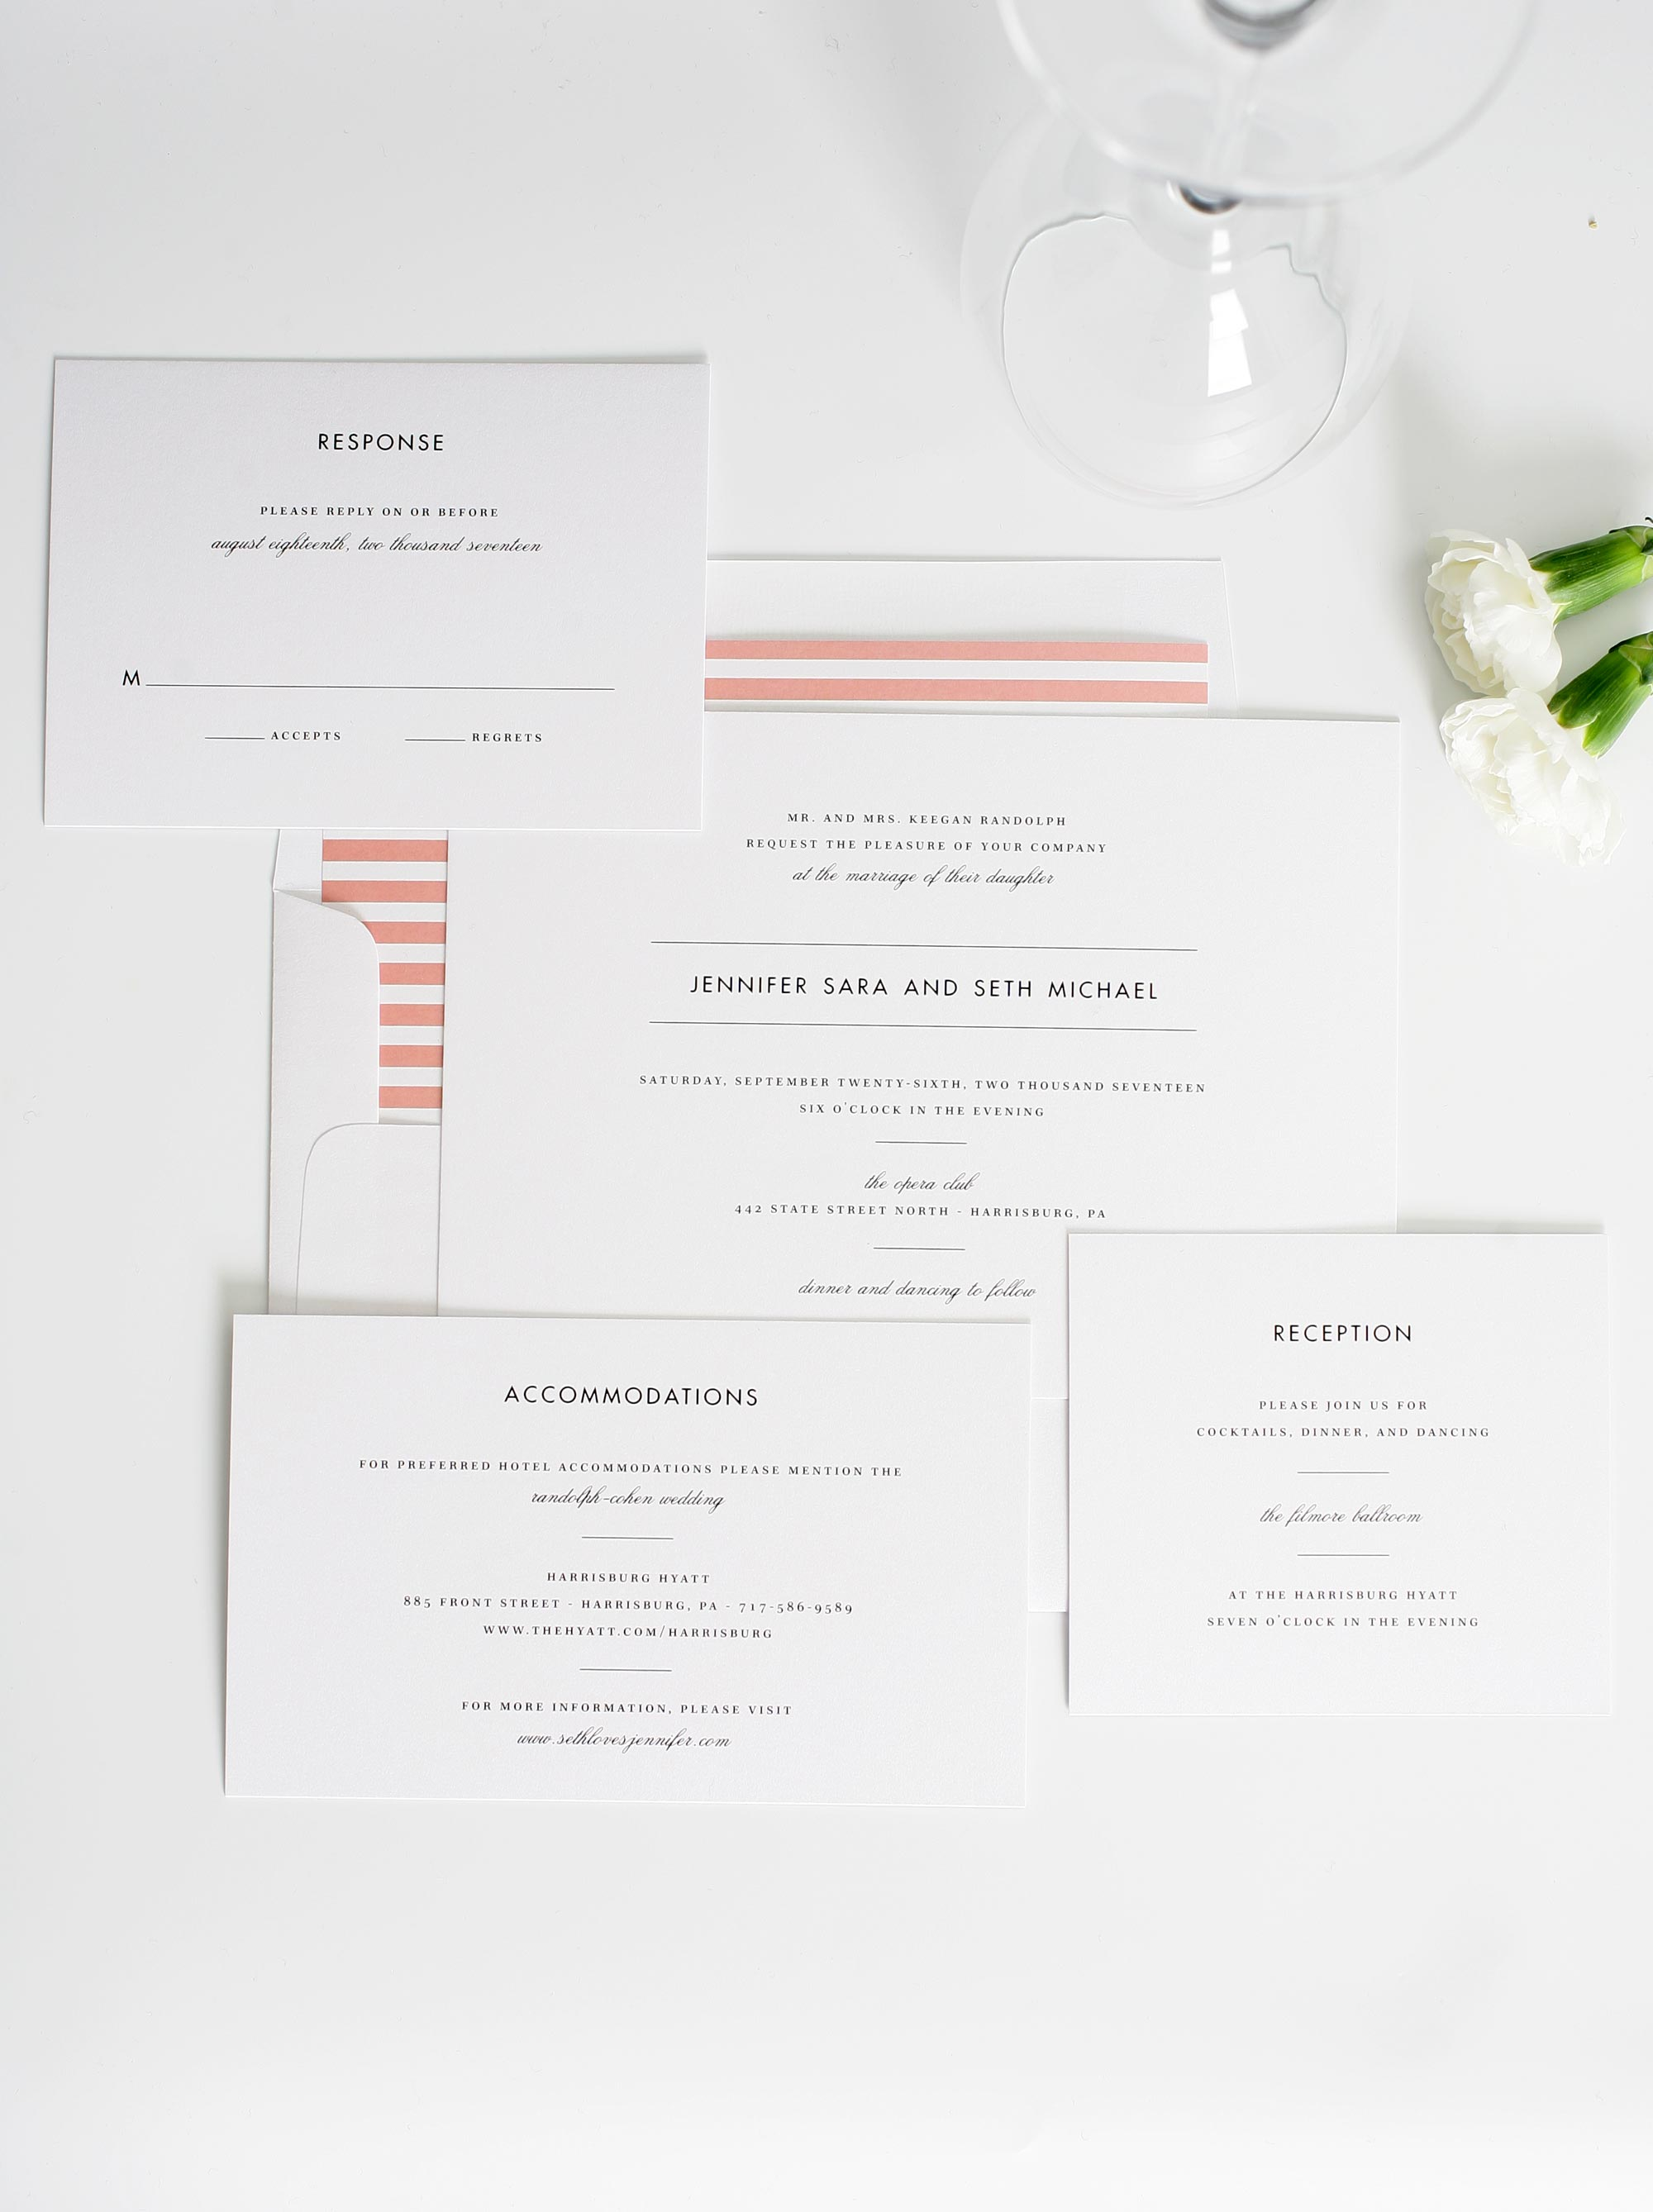 romantic wedding invitation with coral stripes